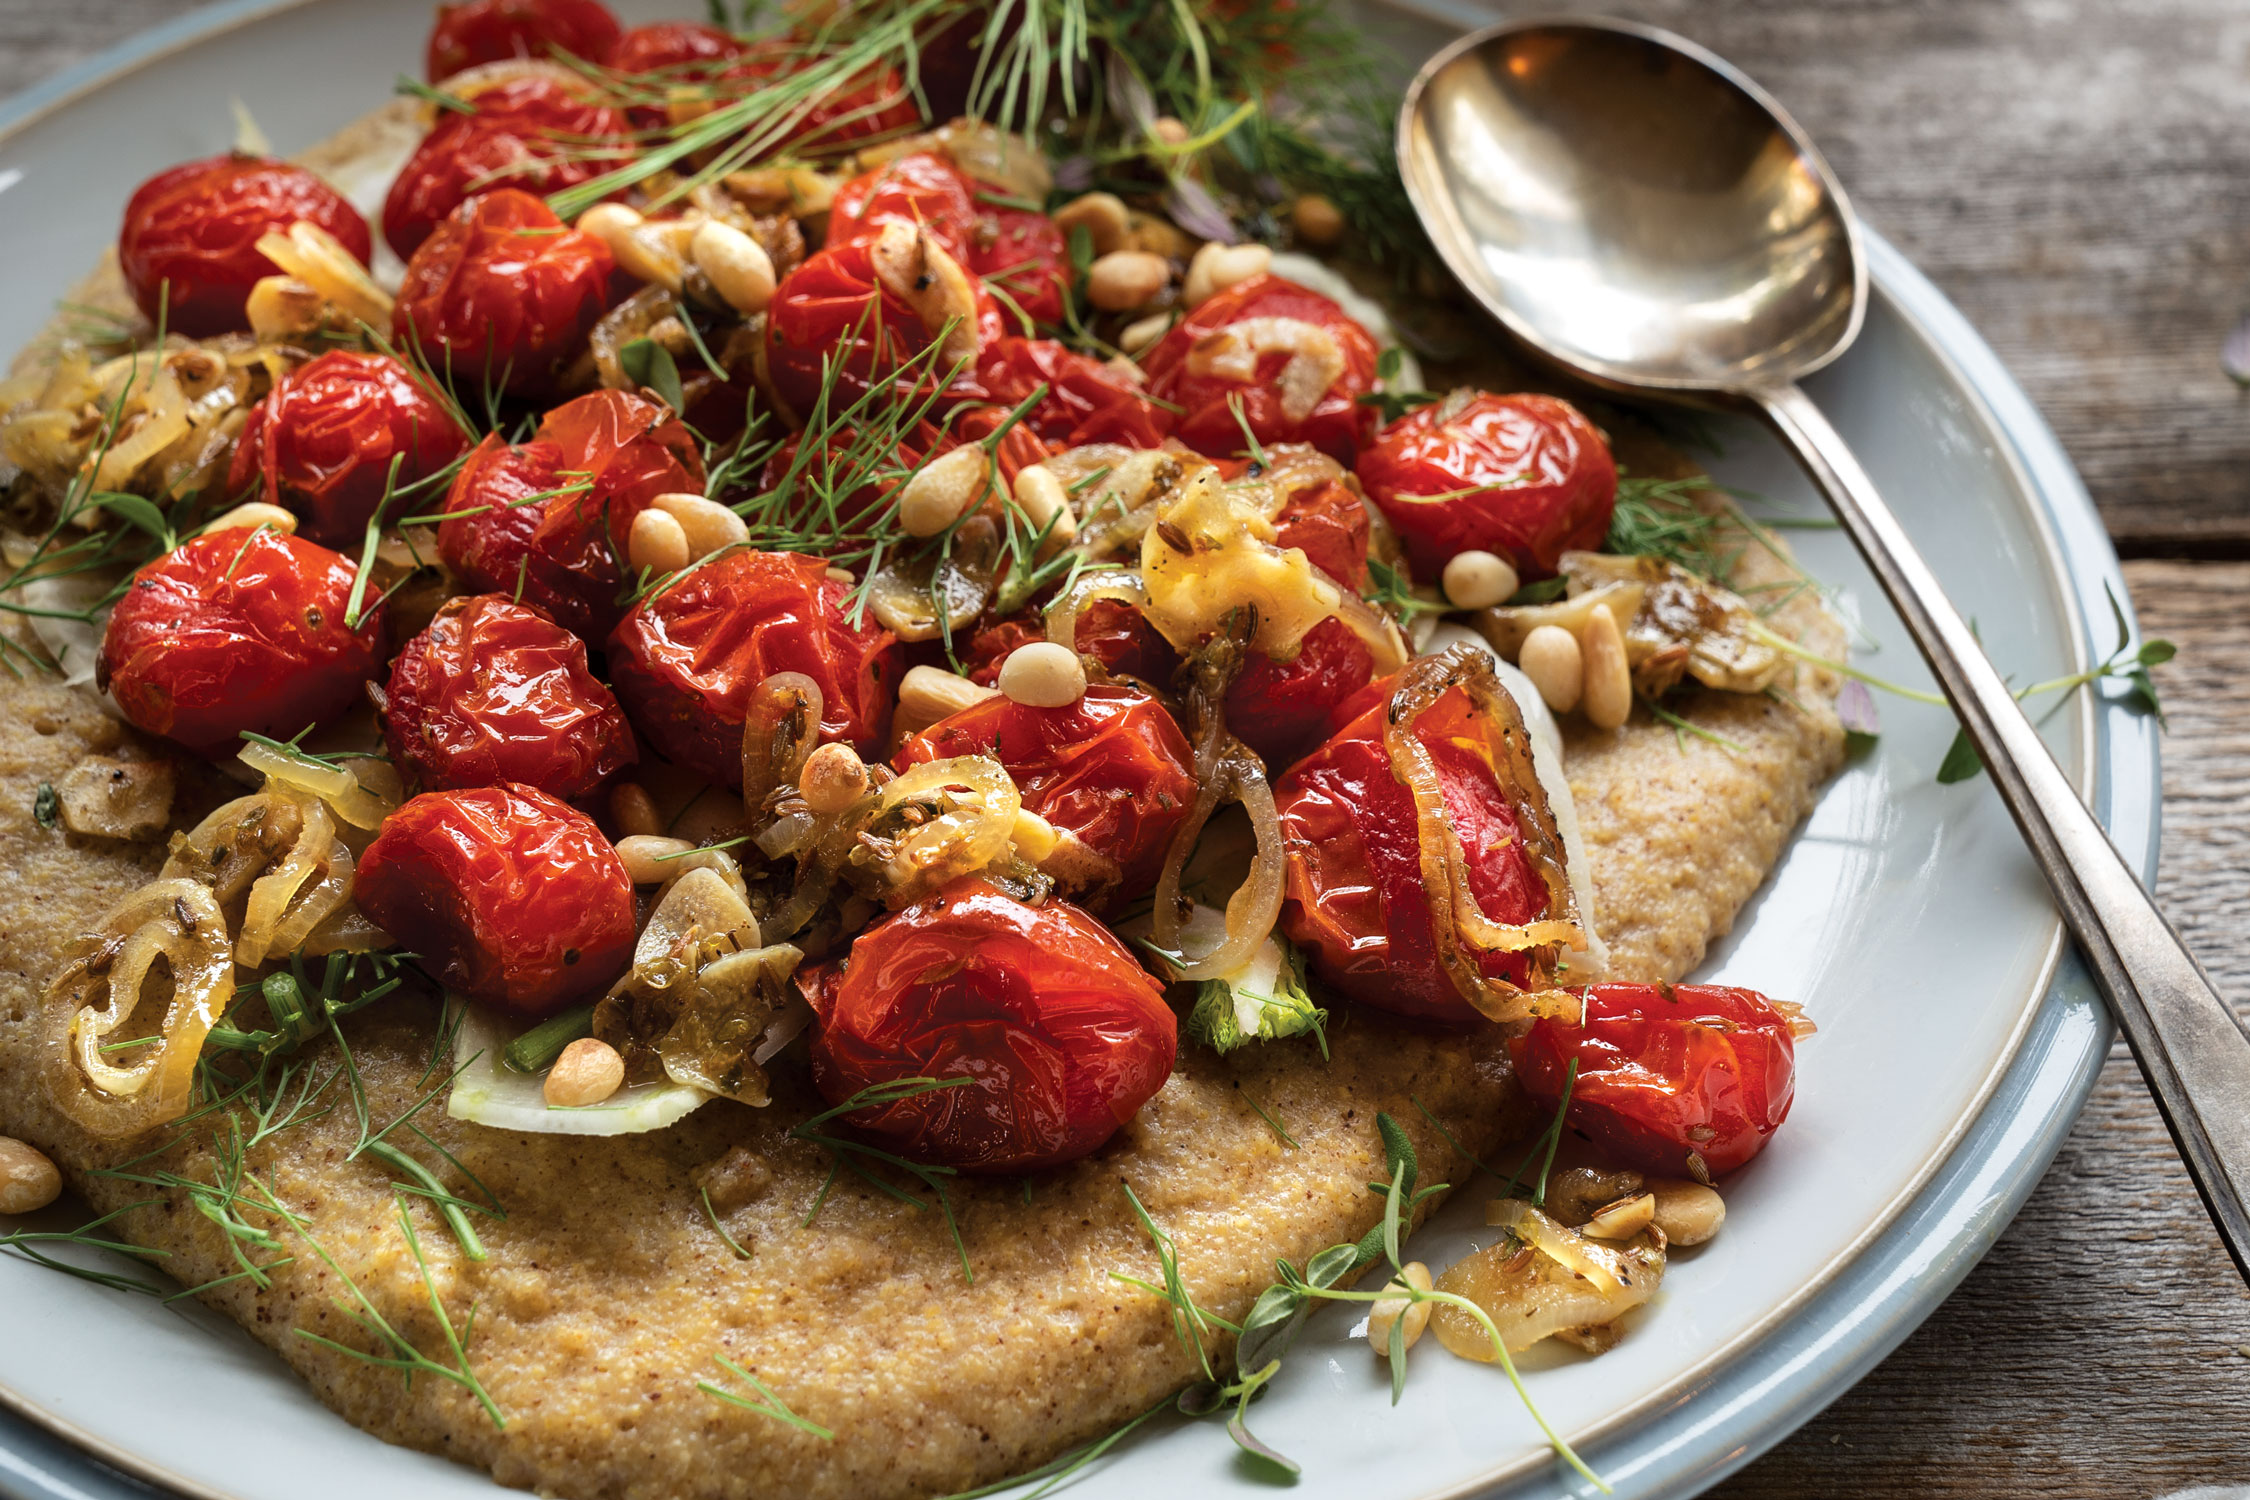 Roasted Cherry Tomatoes on Creamy Polenta